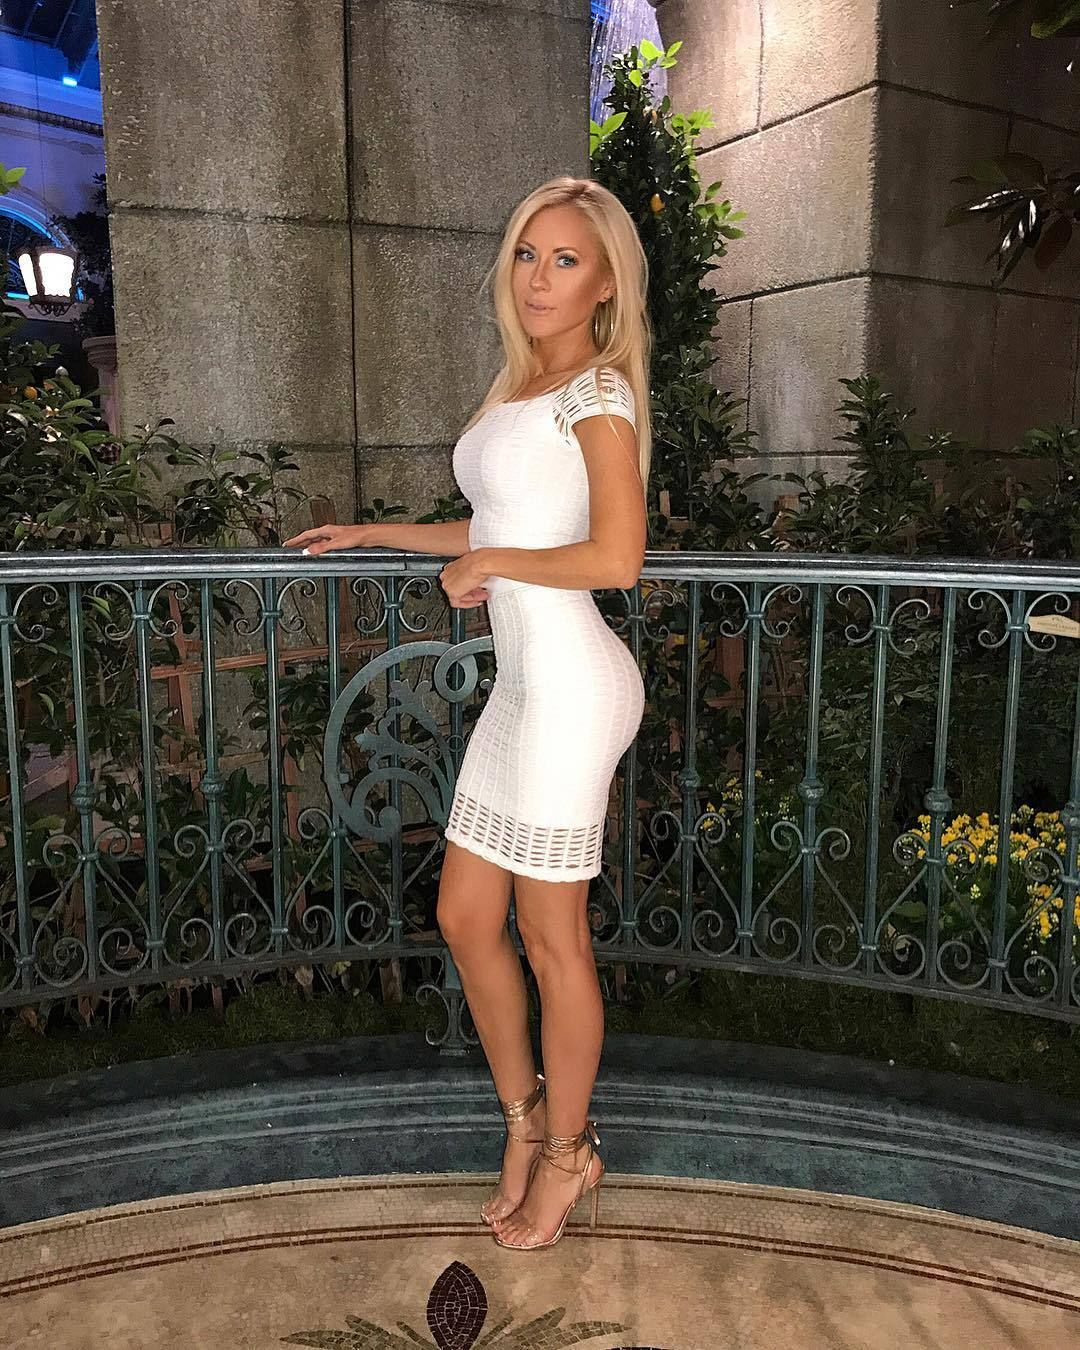 Longlegsandshortskirts photo dress fetish pinterest blondes